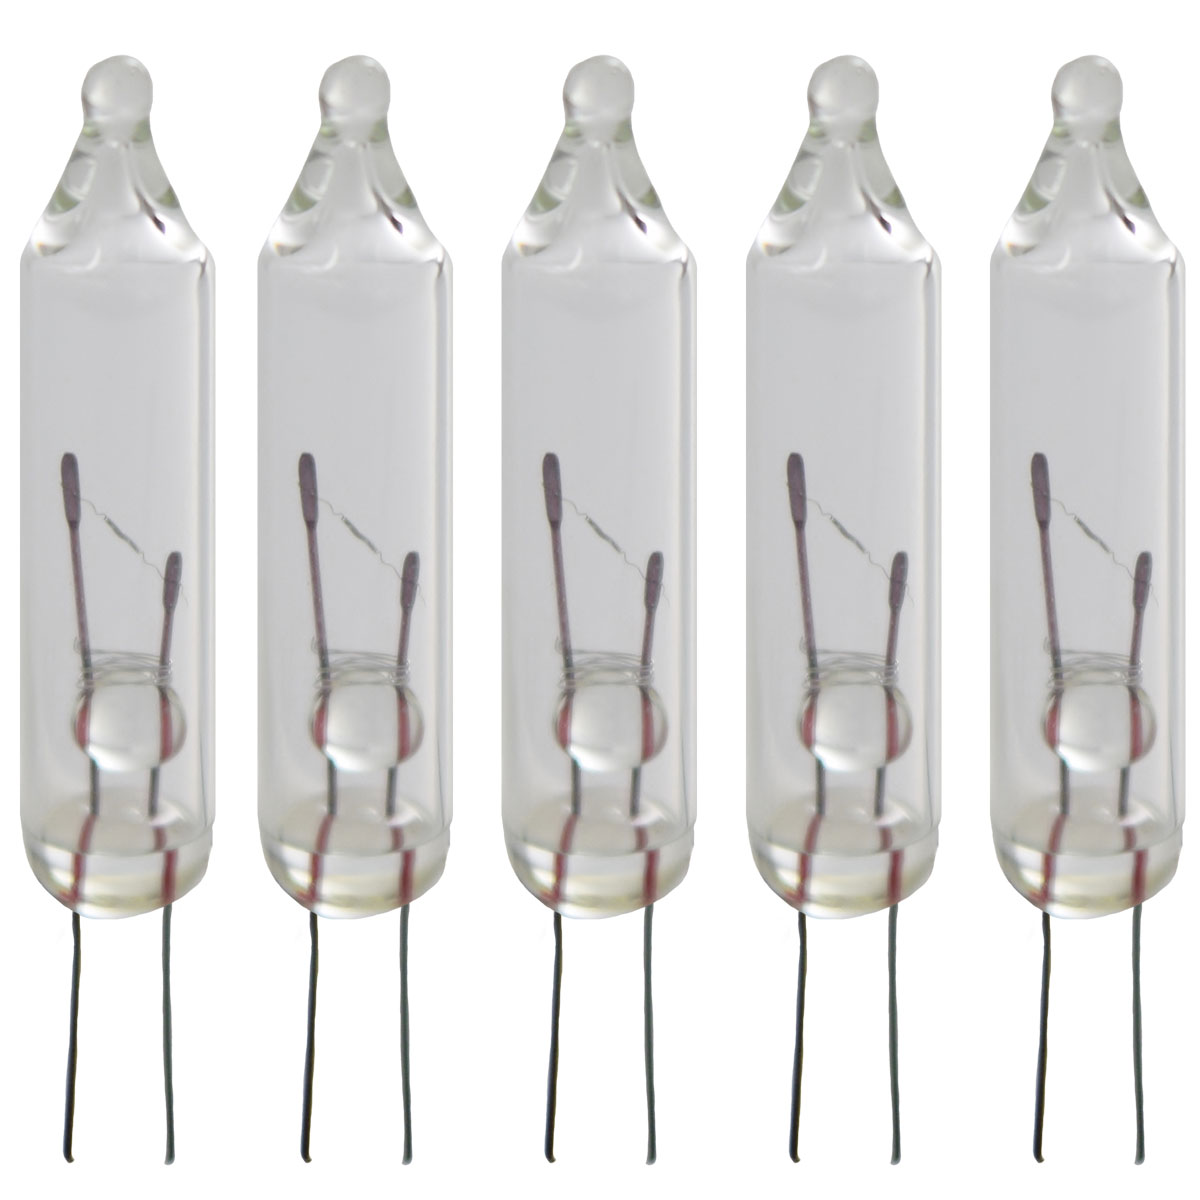 String Lights Replacement Bulbs : Clear Replacement String Light Bulbs - 5 Bulbs